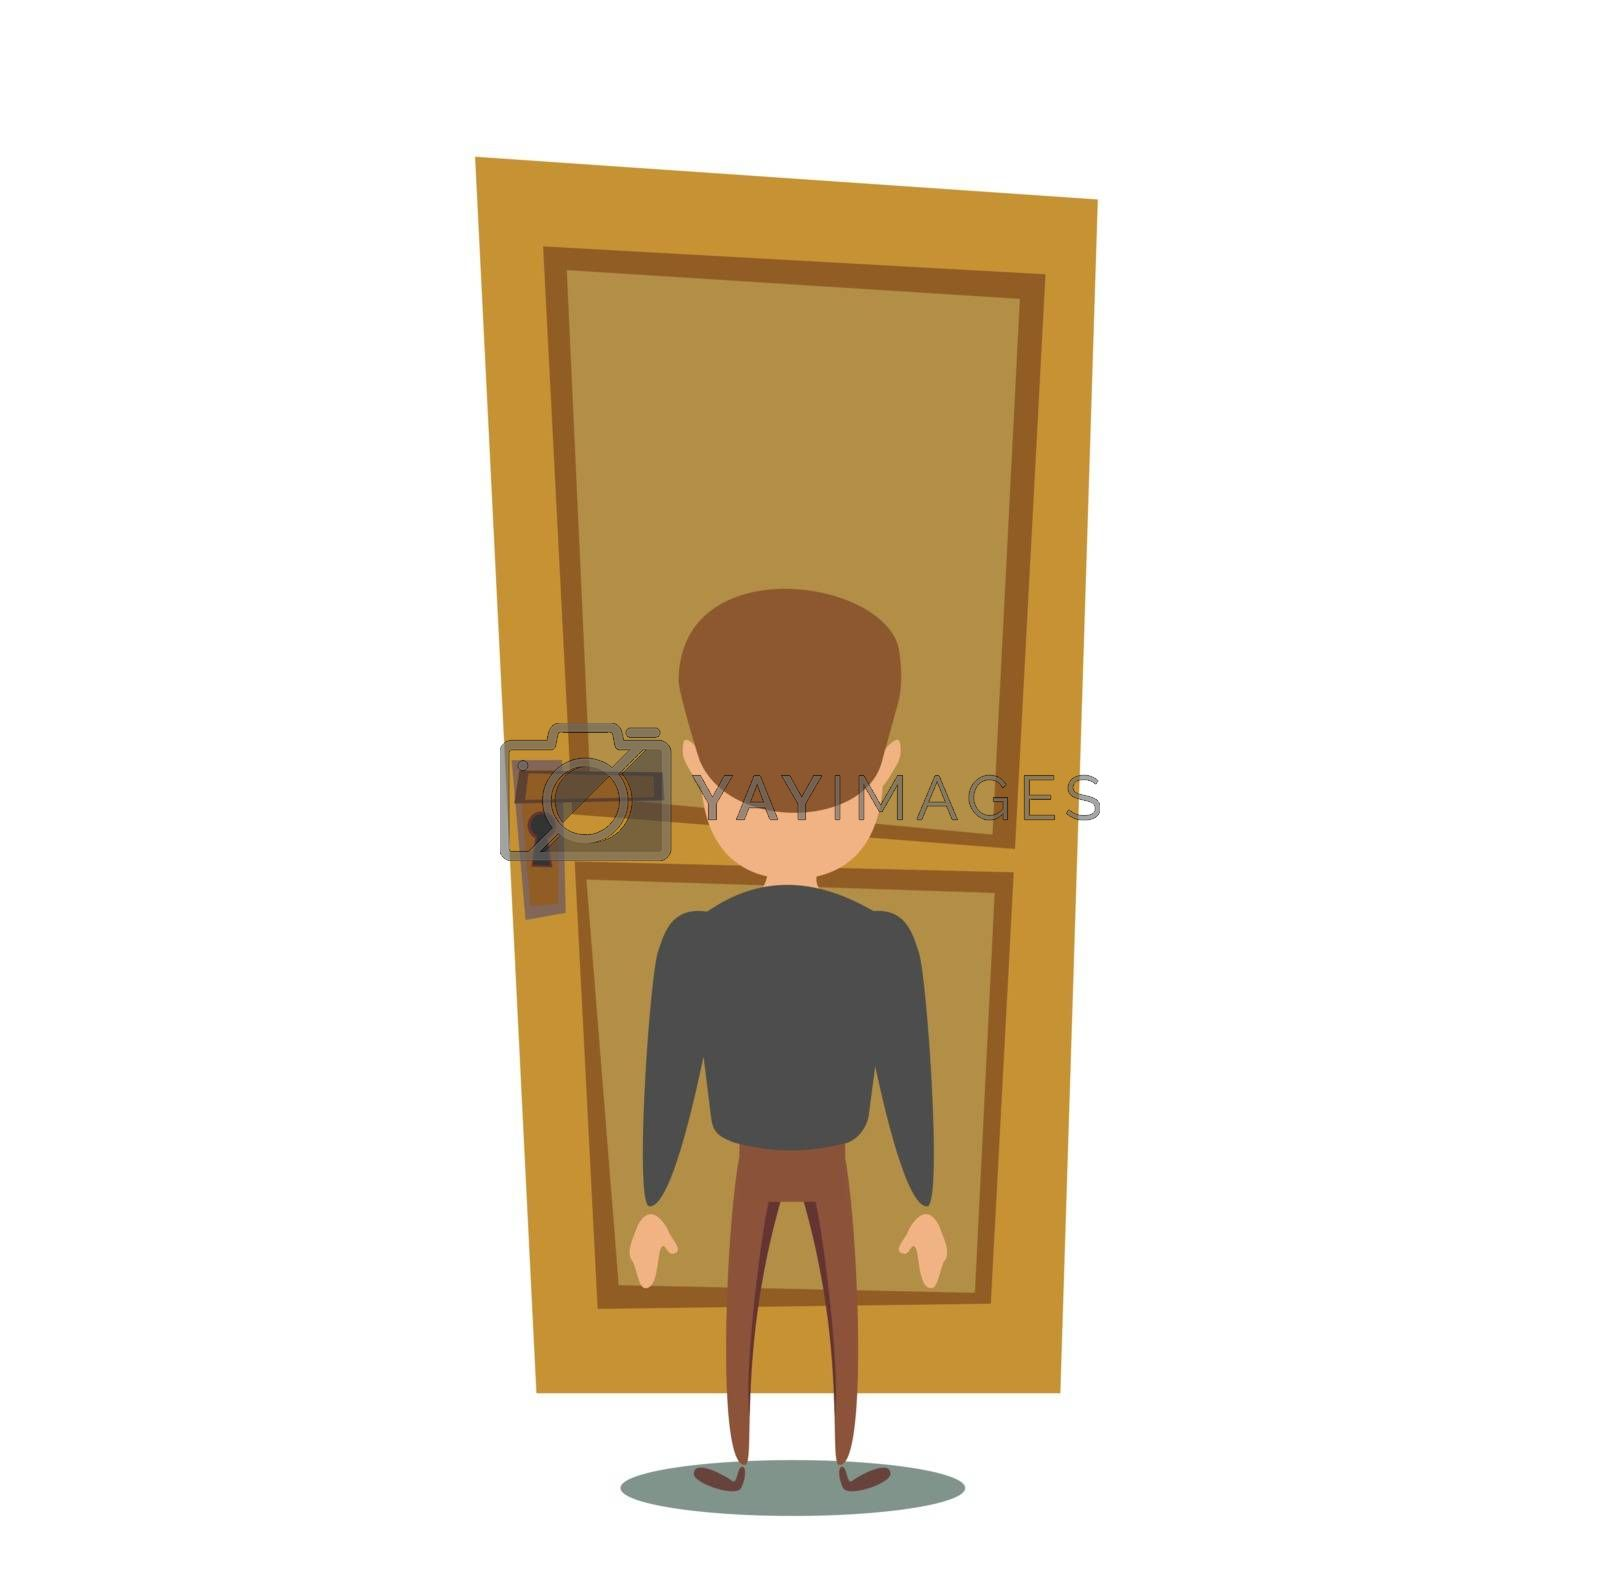 Young character in front of a door knob. Entering the building. Flat editable vector illustration, clip art